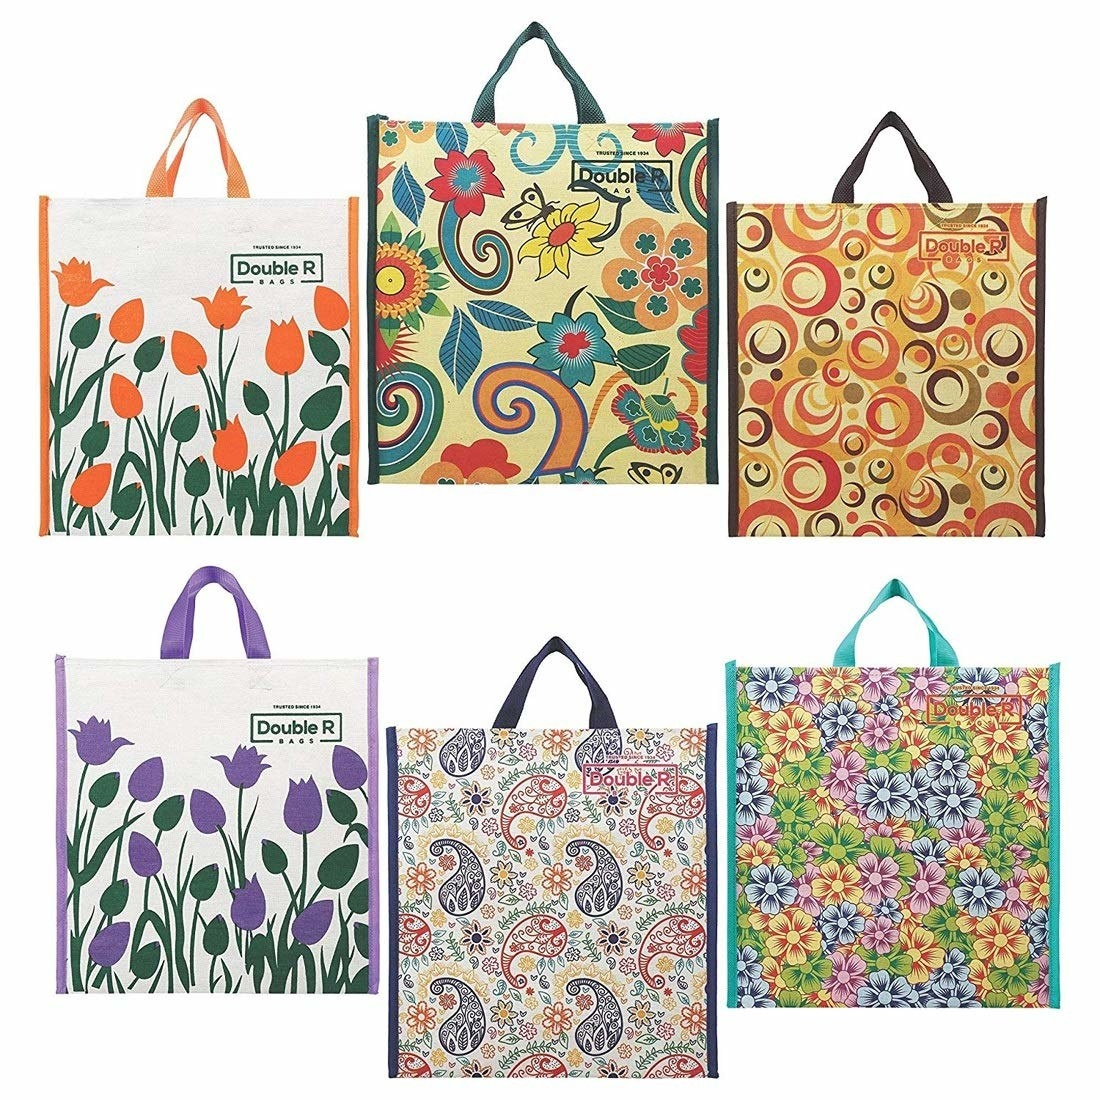 A set of 6 colourful canvas bags